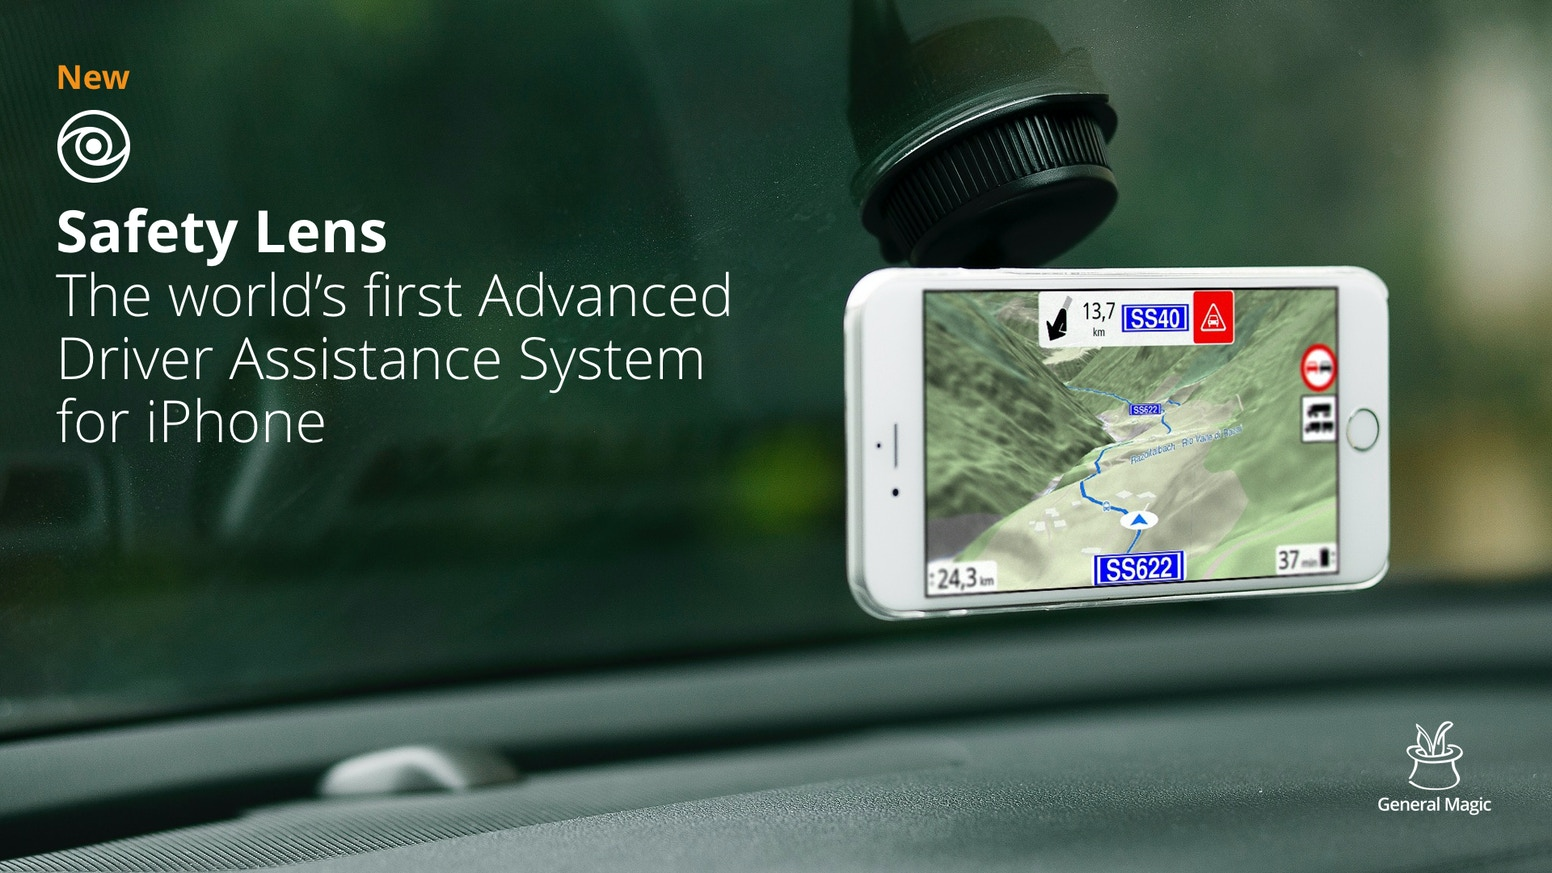 The world's first Advanced Driver Assistance System for iPhone.